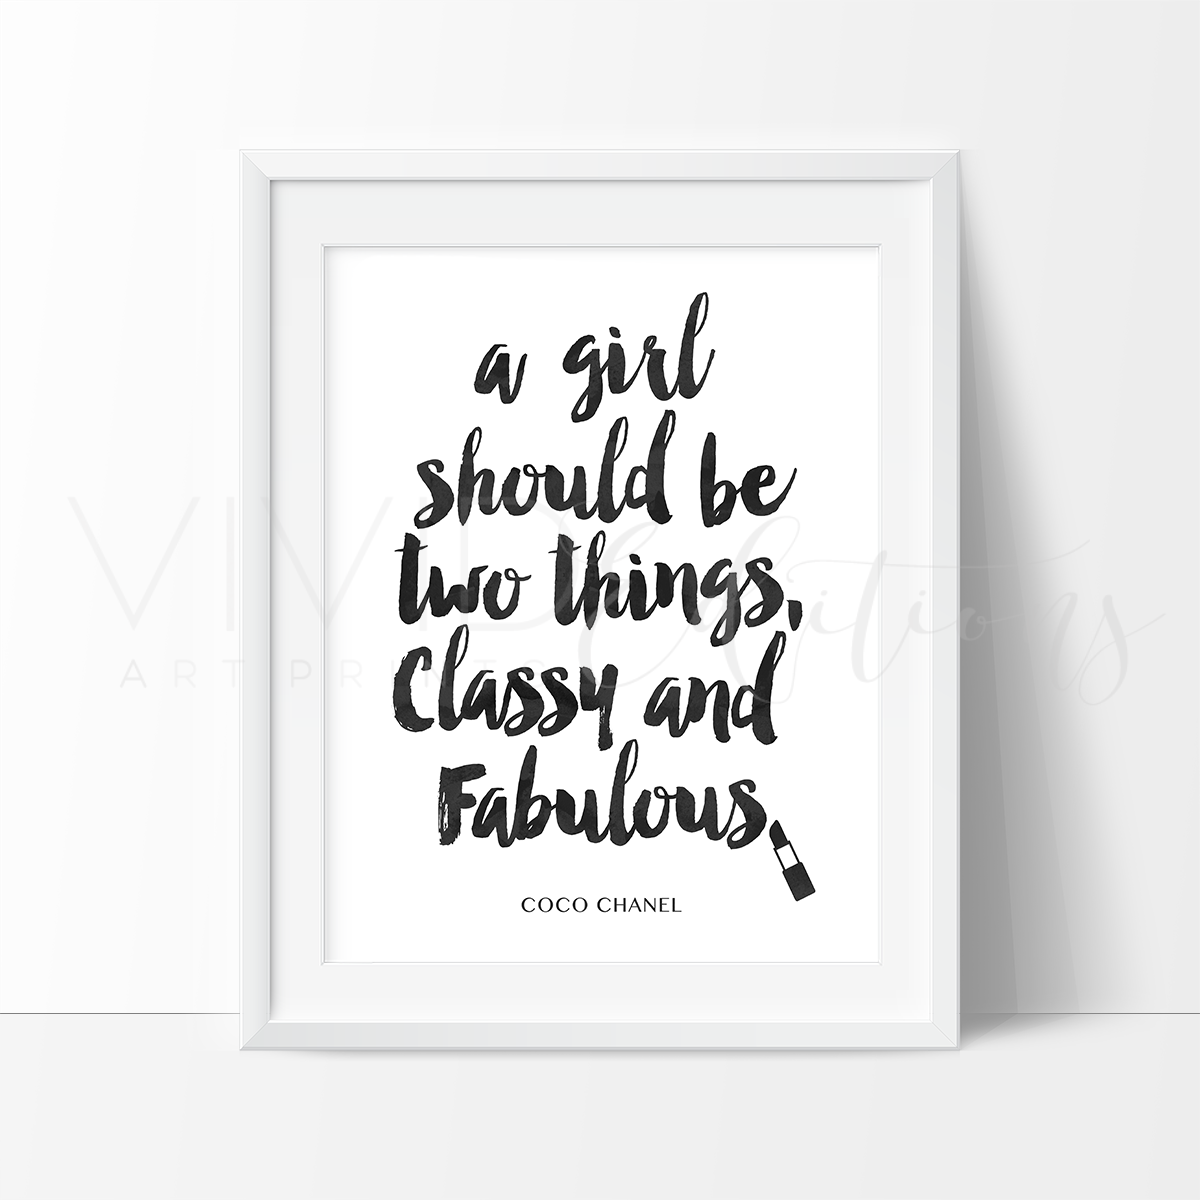 Classy fabulous chanel quote black white watercolor art print art print vivideditions